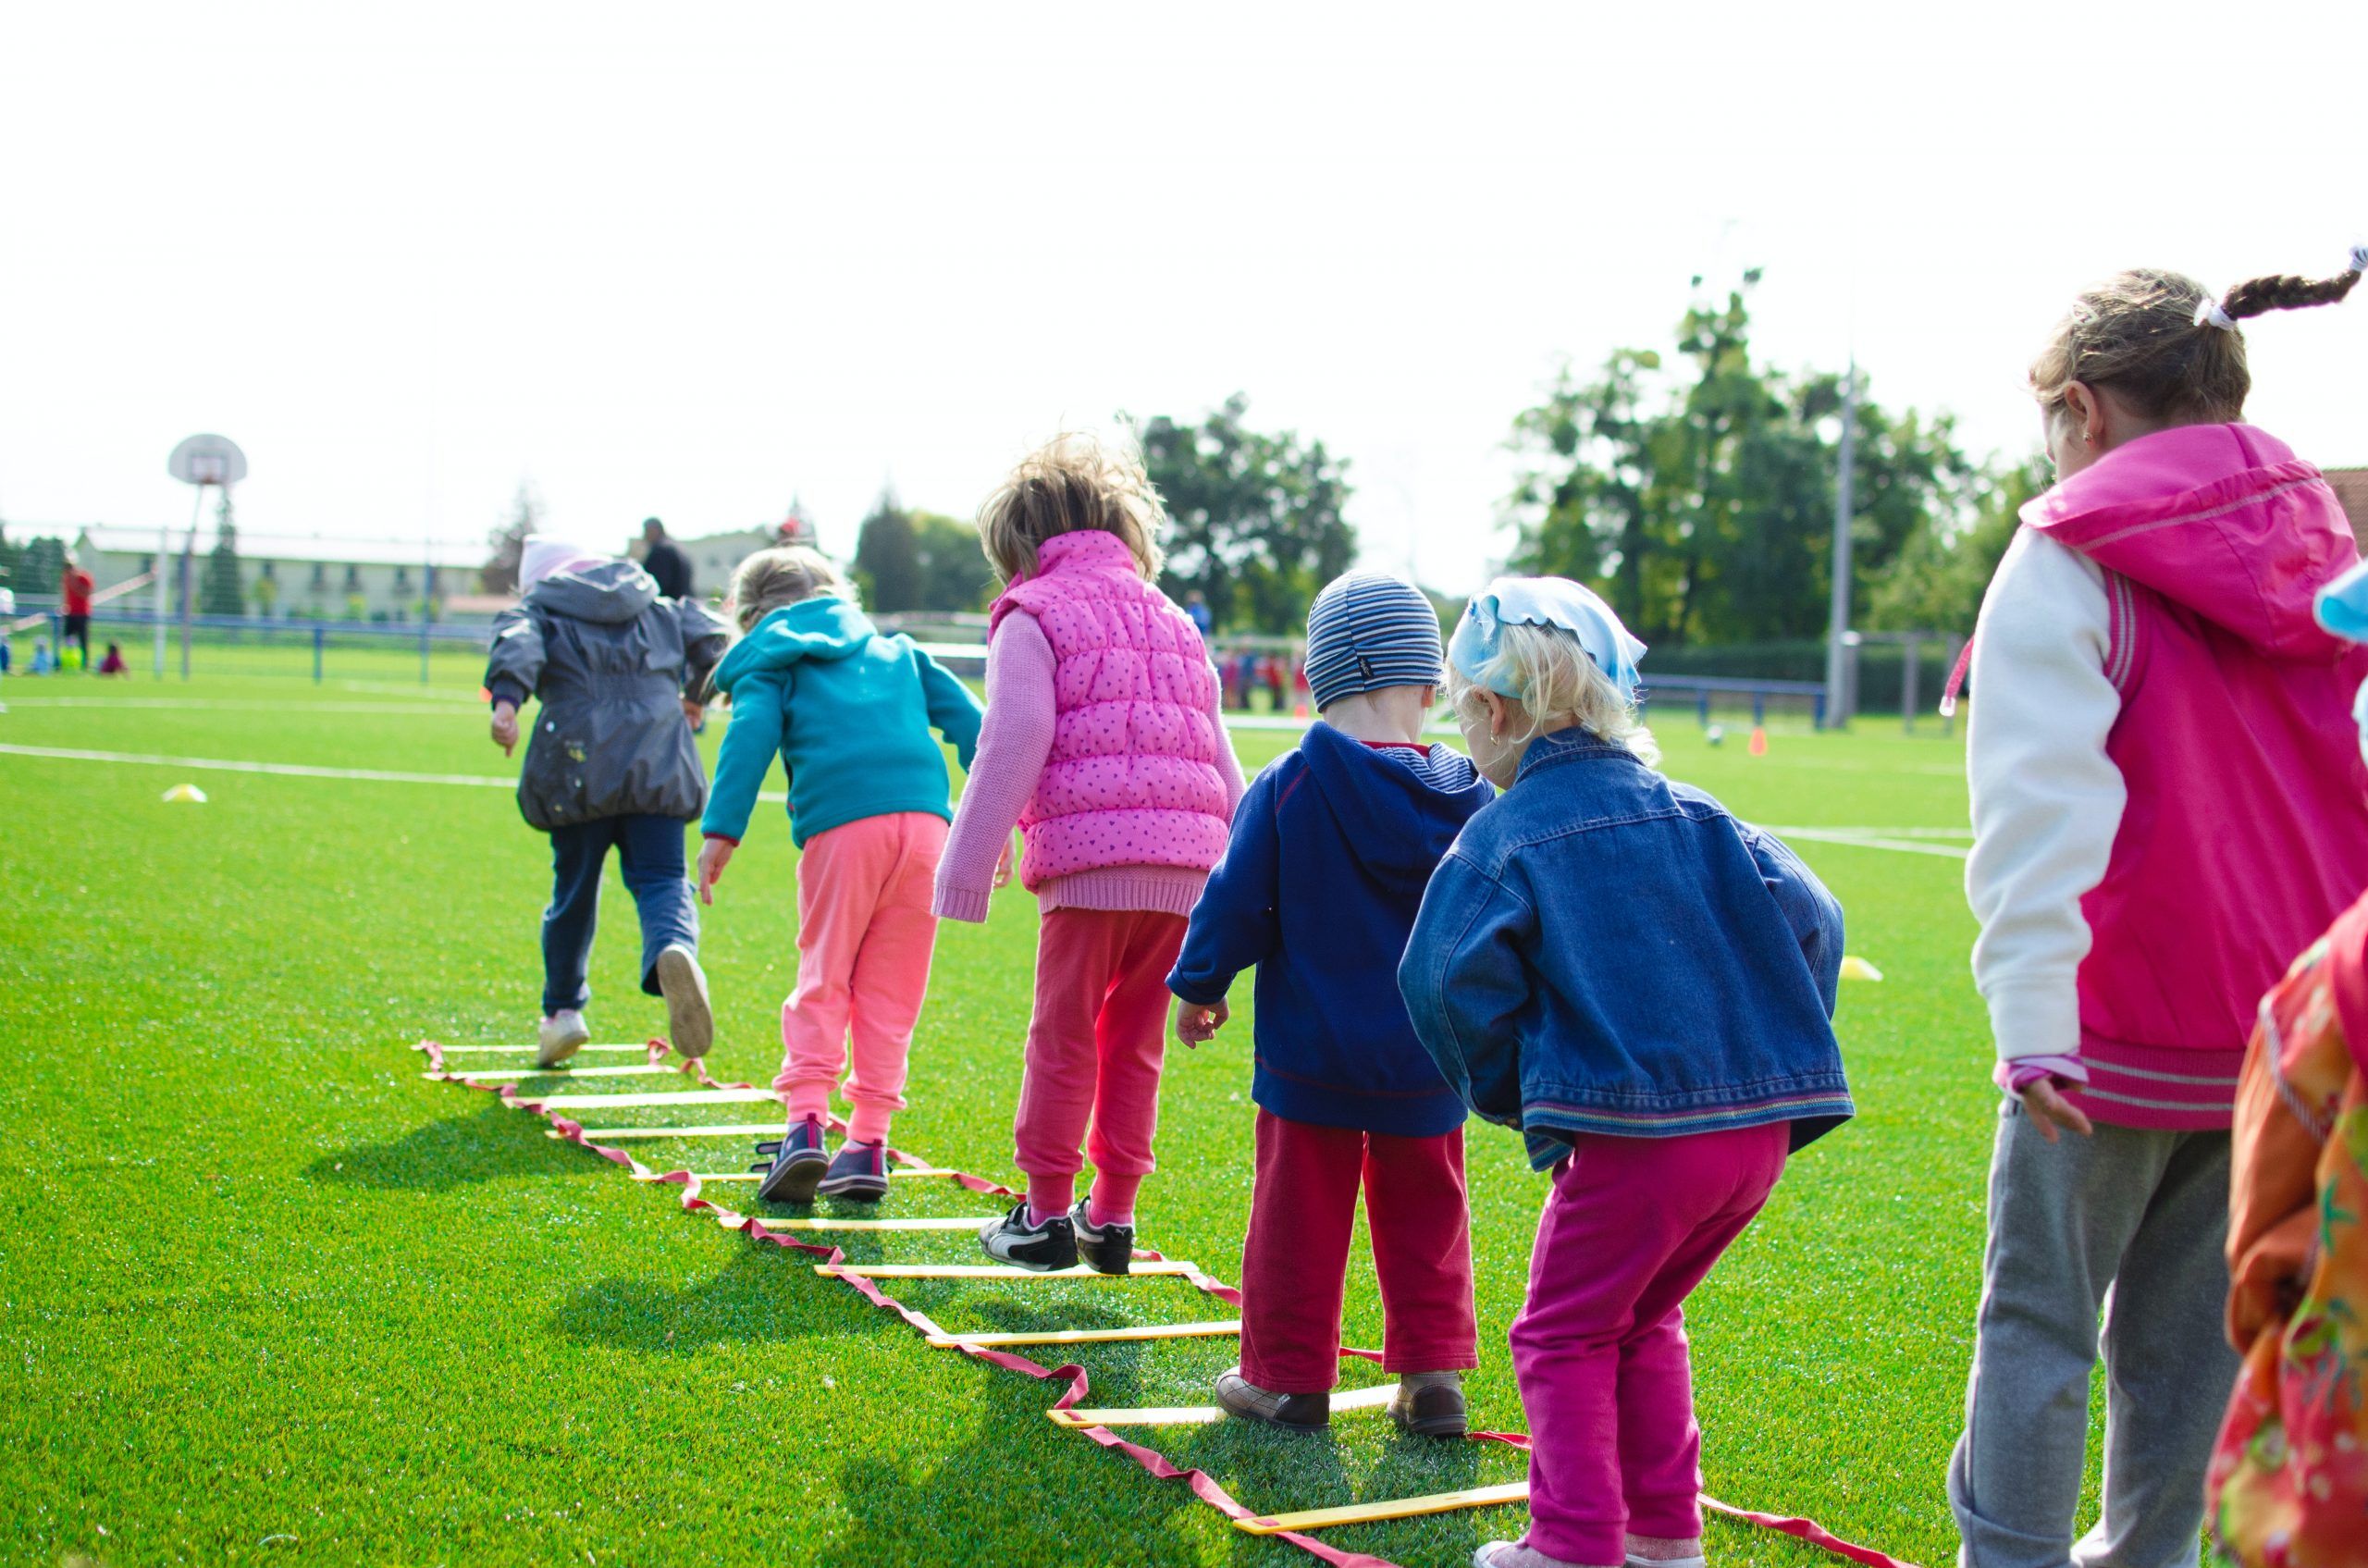 New HEAL Study Measures Temporal Differences in Rural Canadian Children's Moderate-to-Vigorous Physical Activity